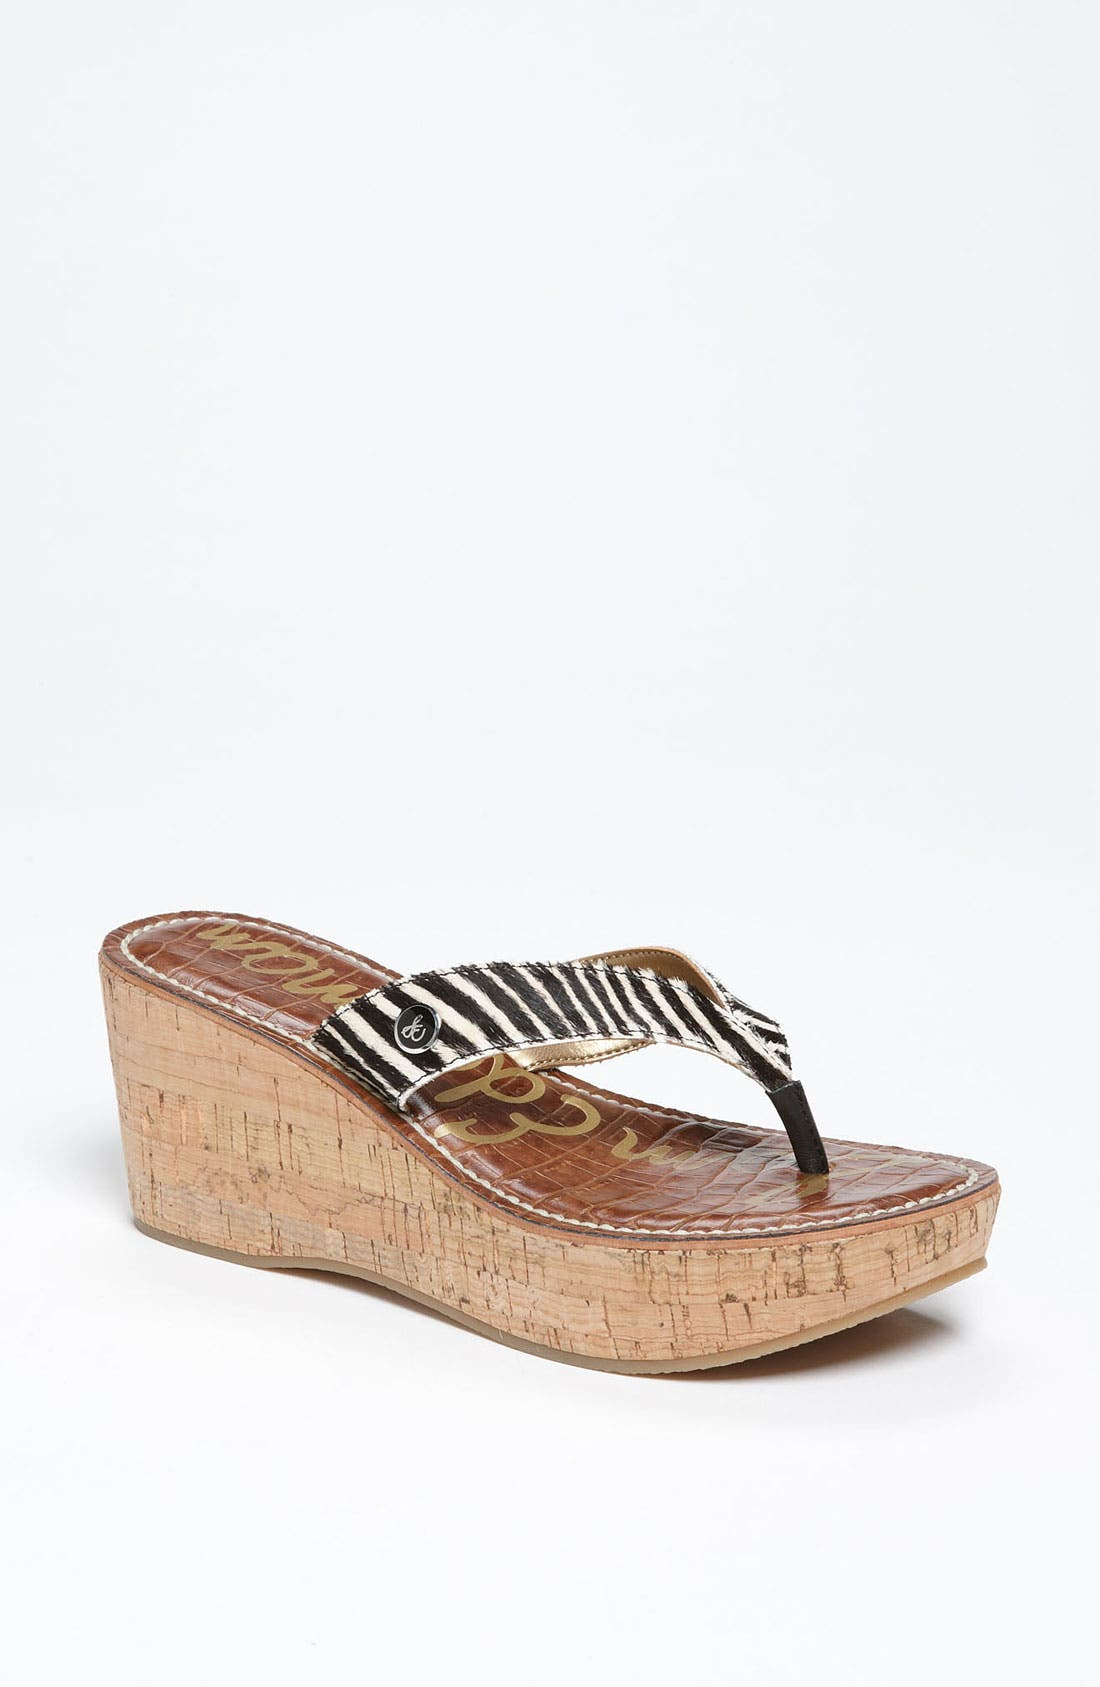 Main Image - Sam Edelman 'Romy' Wedge Sandal